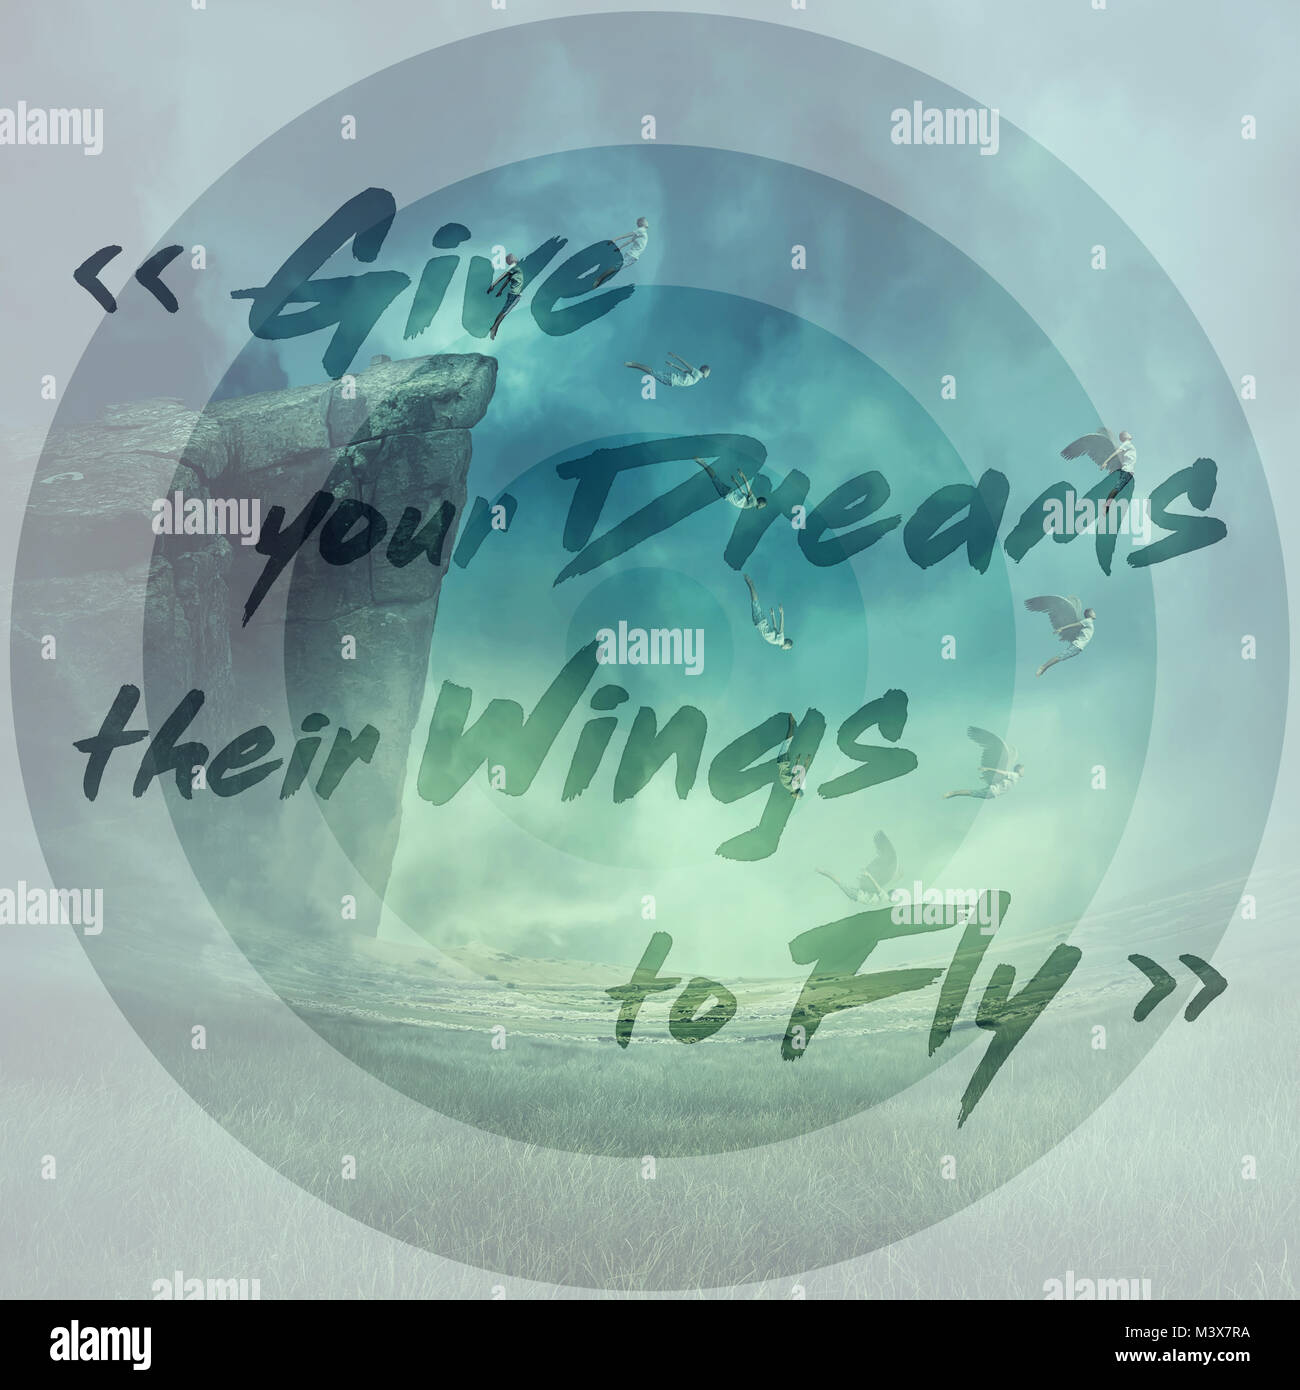 Inspirational words, give your dreams their wings to fly, and a young boy jumping from the edge of a cliff, falling - Stock Image